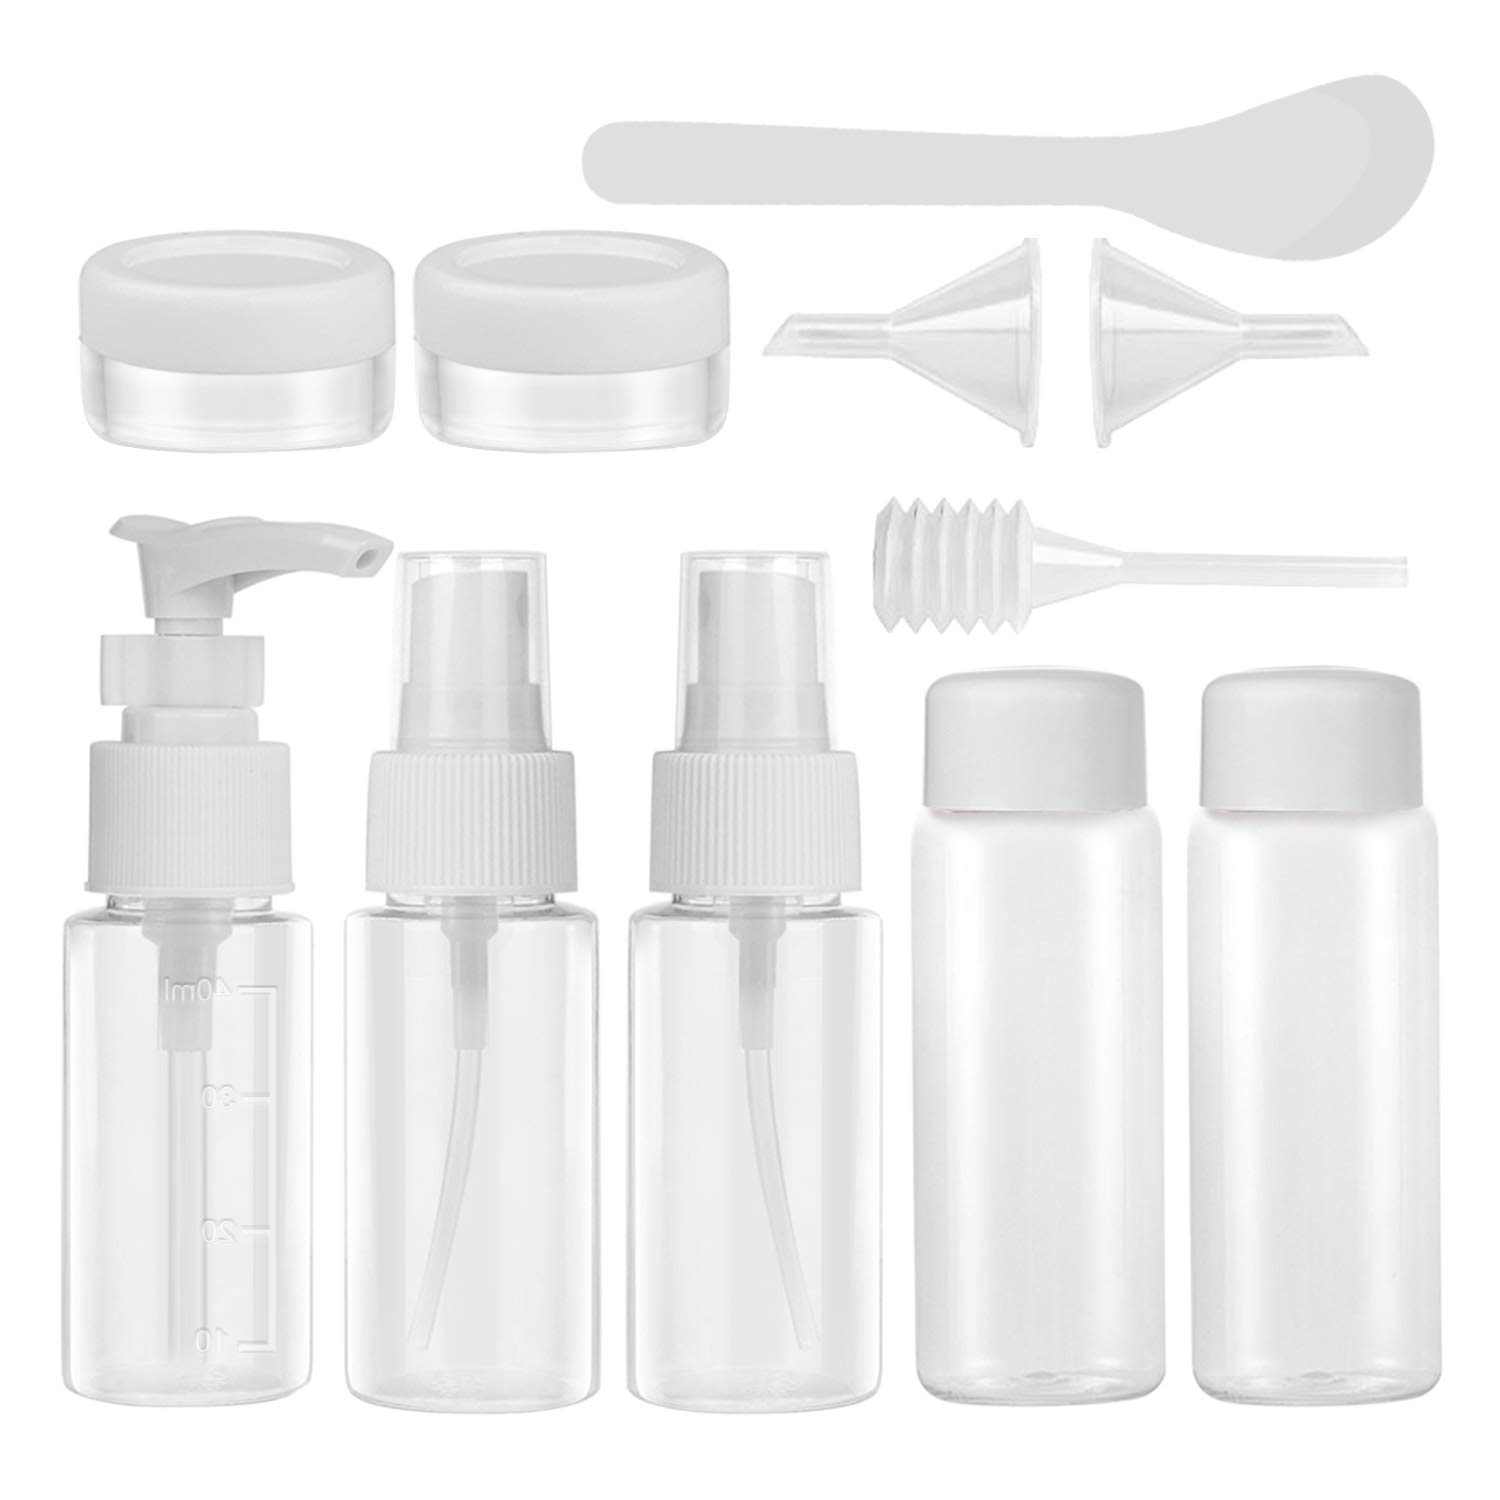 Travel Bottles Set, Aival 11 Pieces Air Travel Bottles Toiletries Liquid Dispensing Tubes Containers Set BPA Free Refillable Leakproof for Liquid Cream Shampoo Perfume, Cosmetic Make-up, etc.